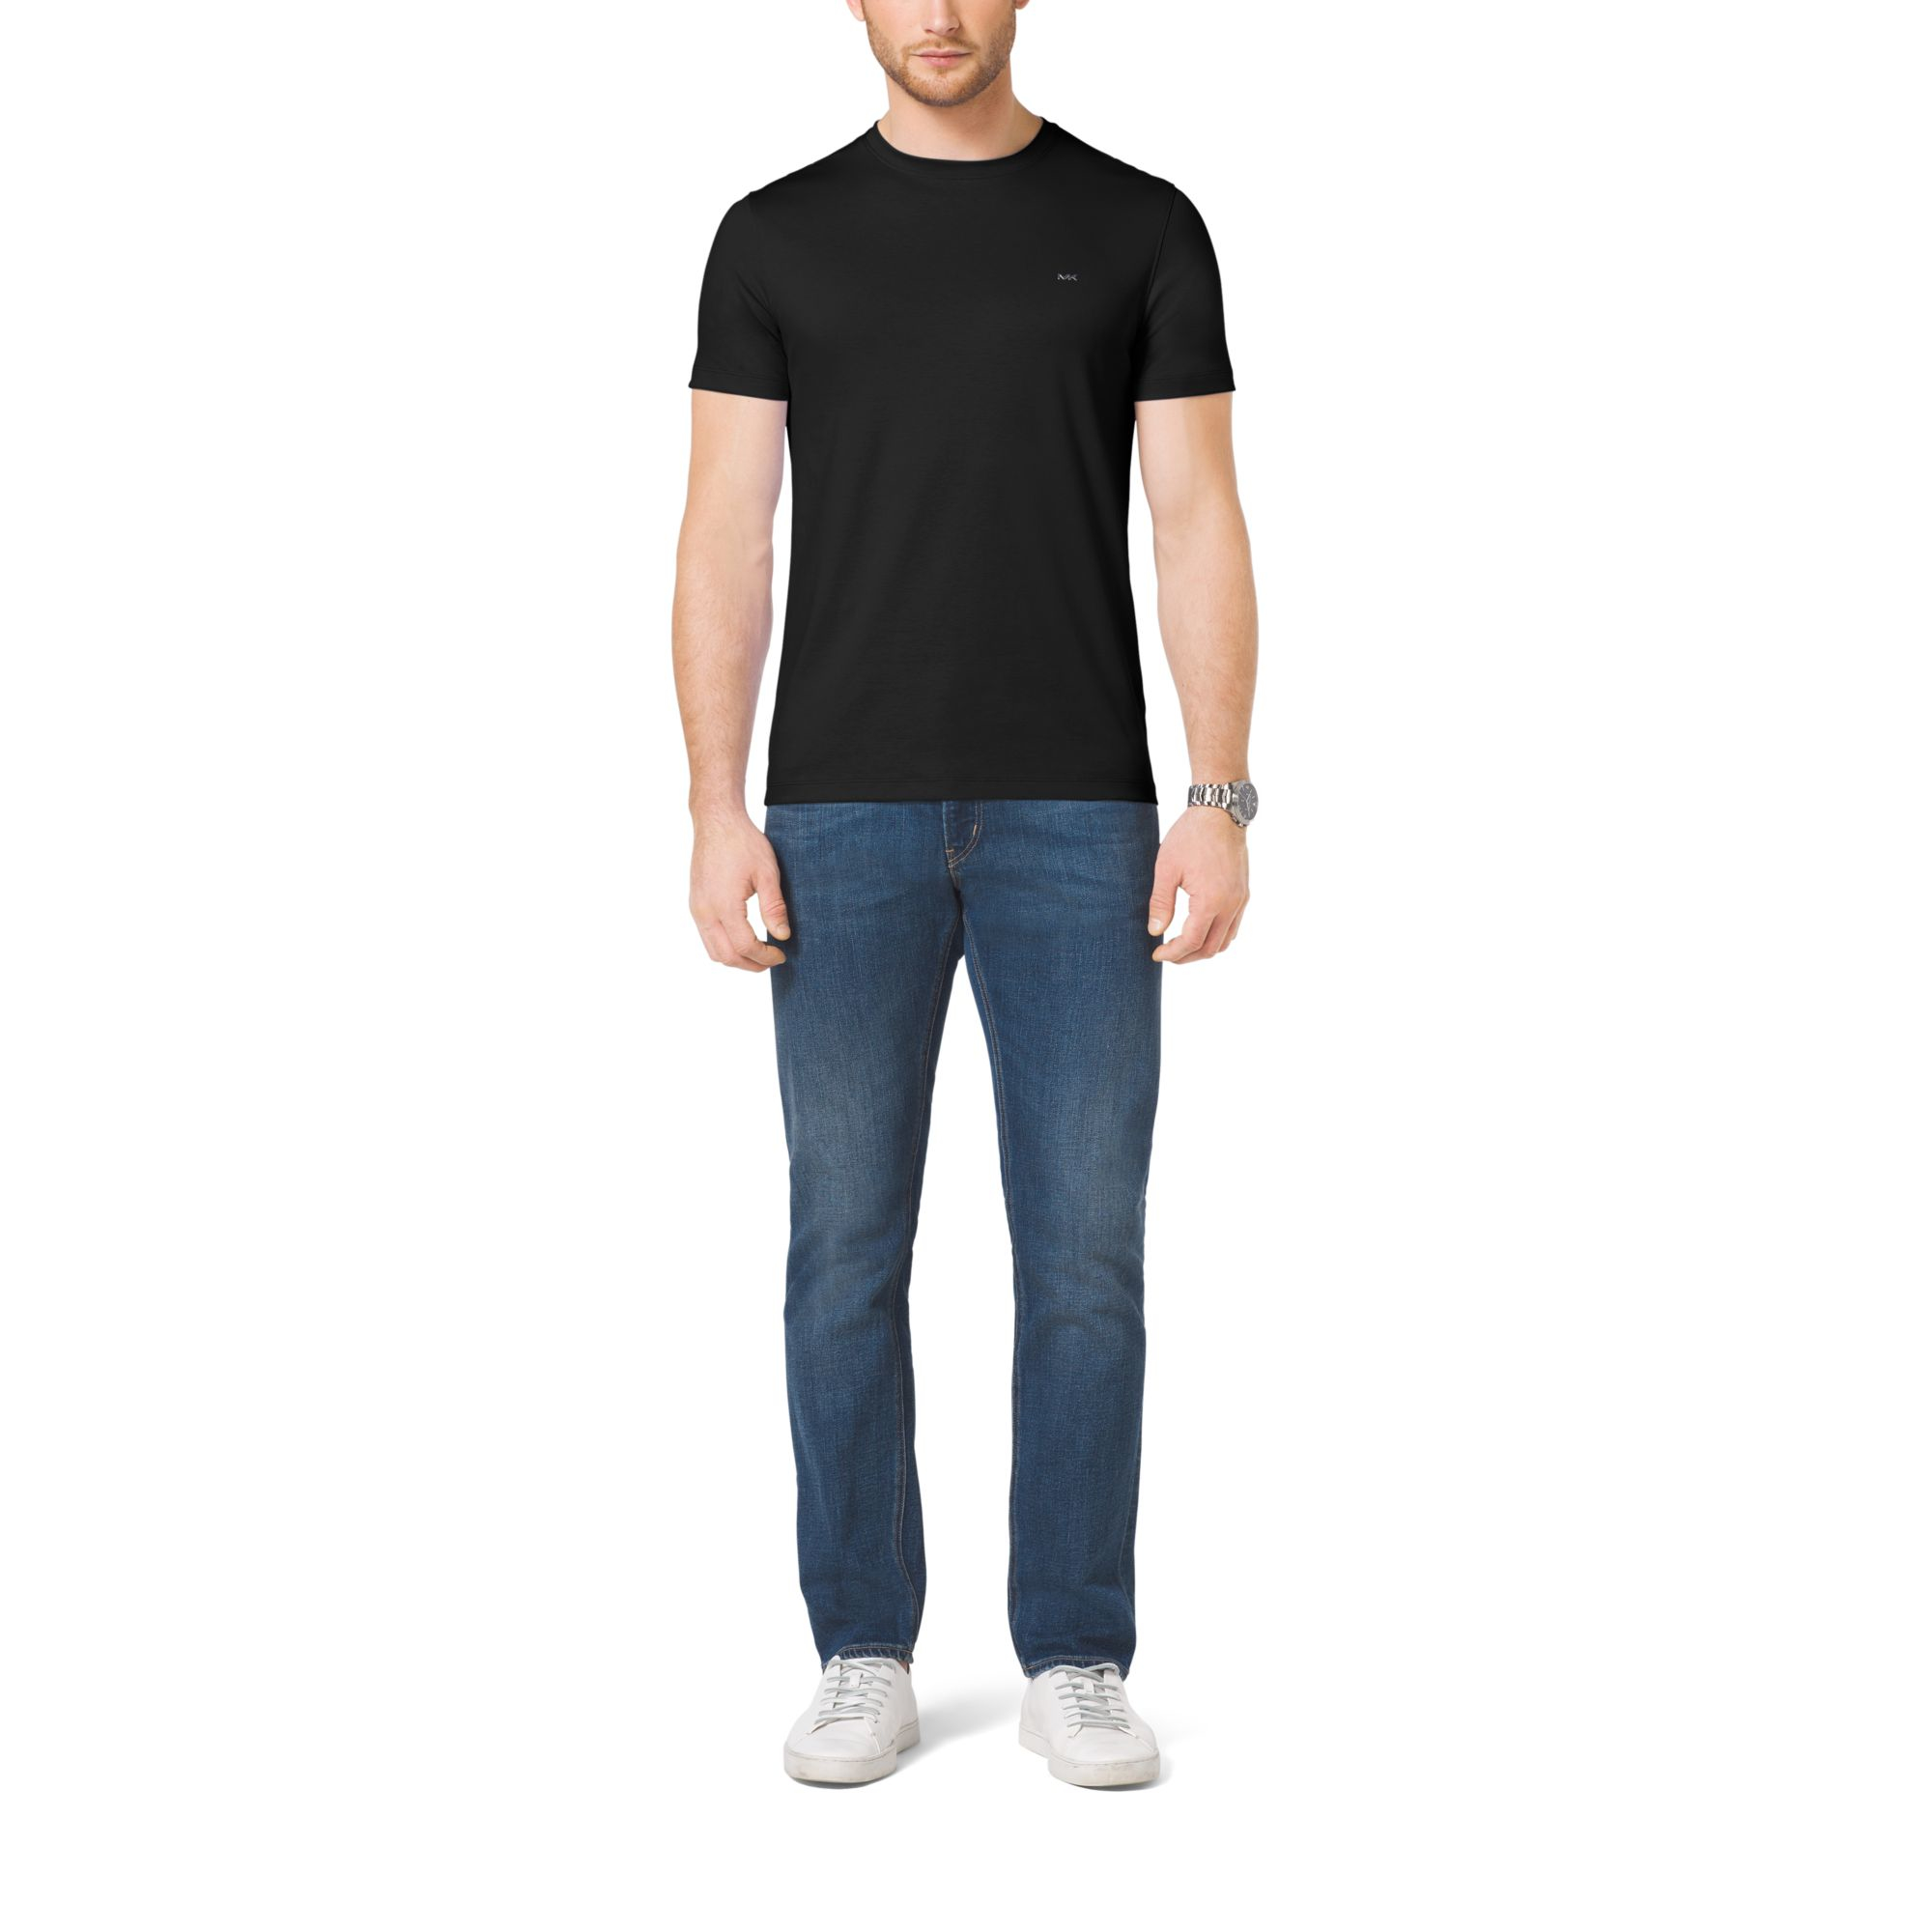 Michael kors cotton polo shirt in black for men lyst for Black cotton polo shirt